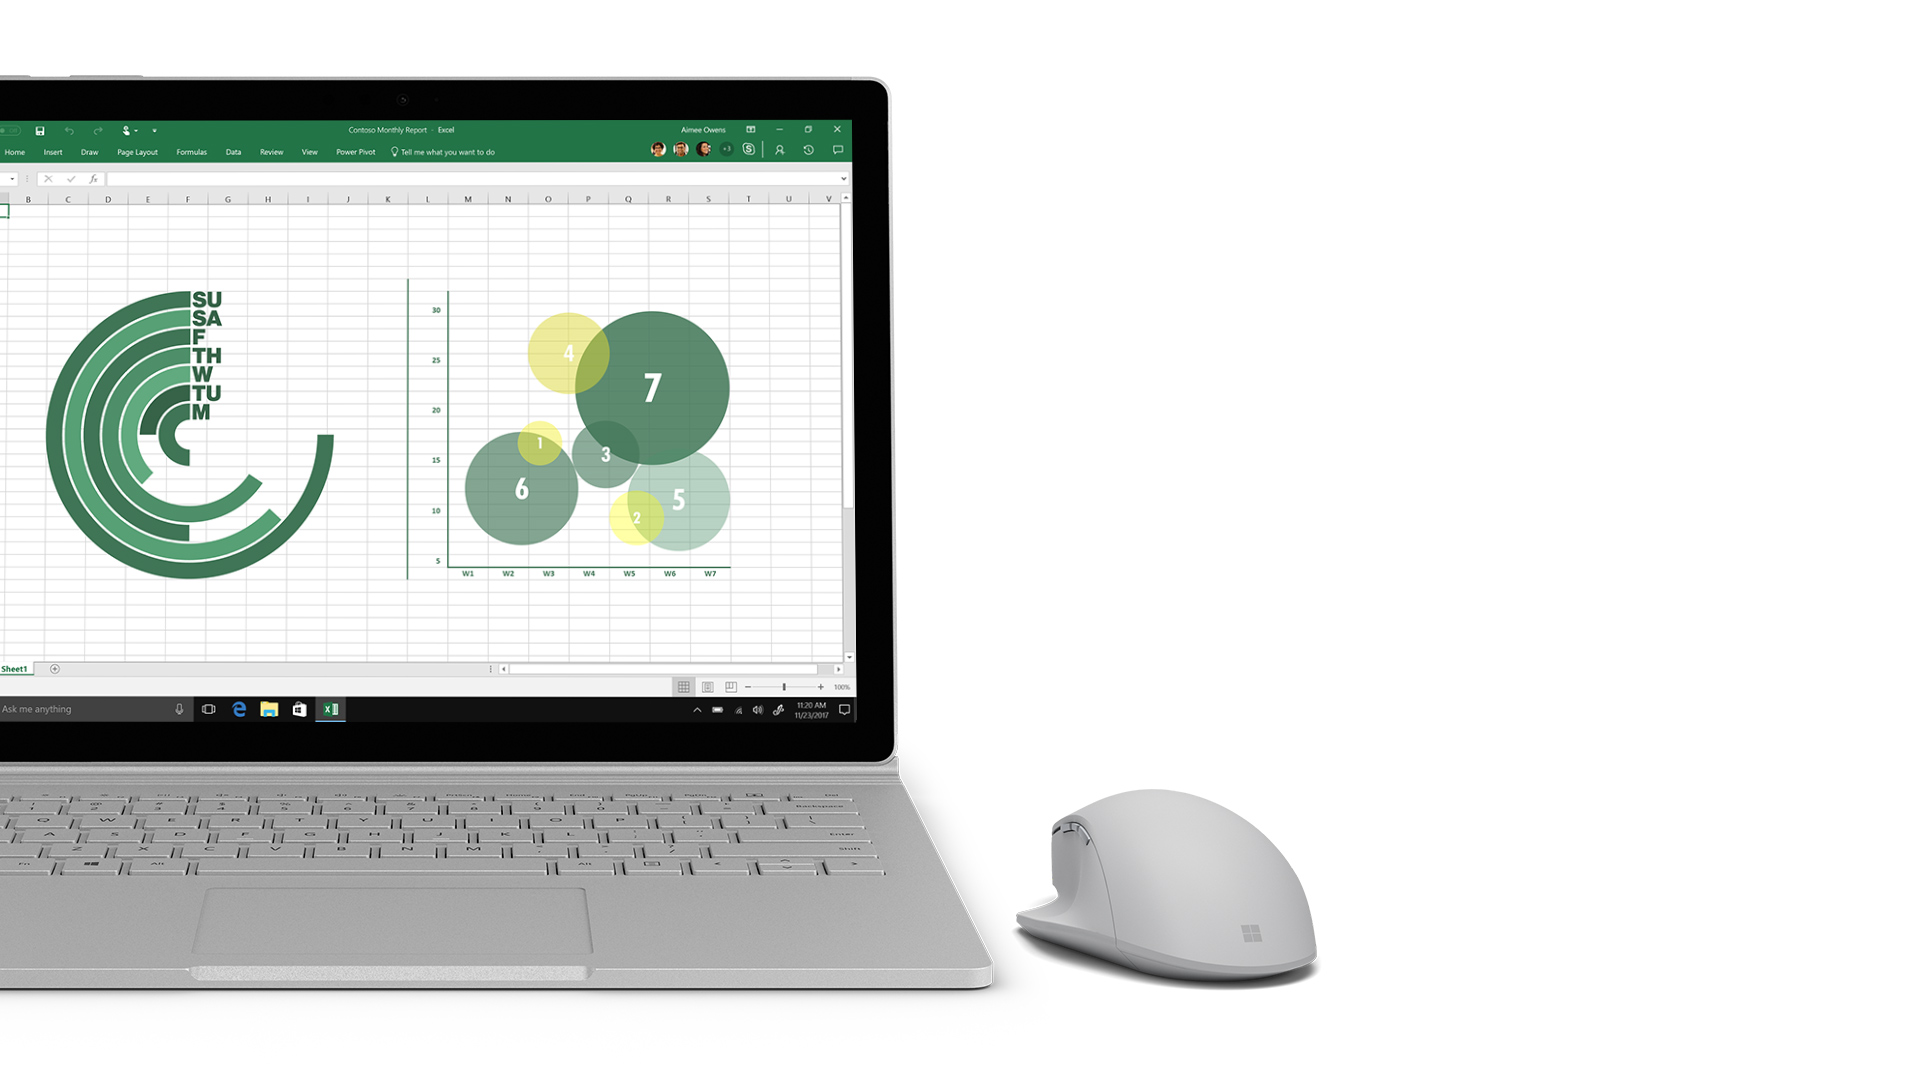 Immagine di Excel su Surface.